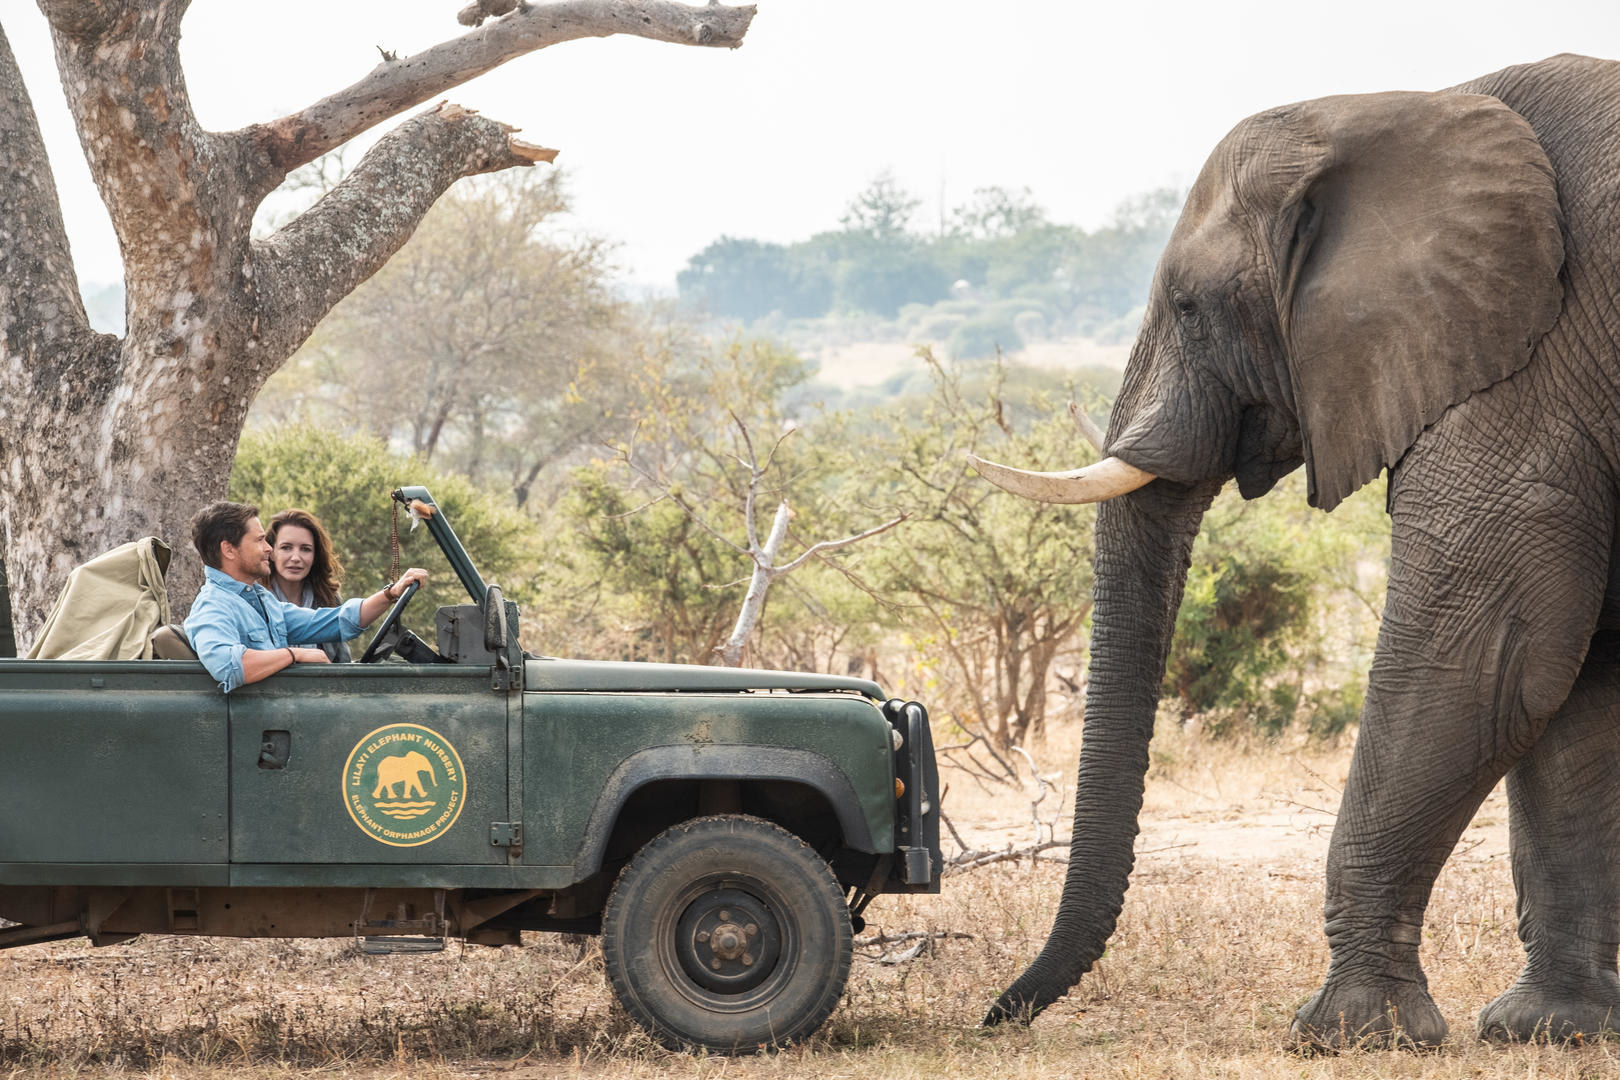 Kate and Derek driving in the rescue jeep with an elephant in front of them.